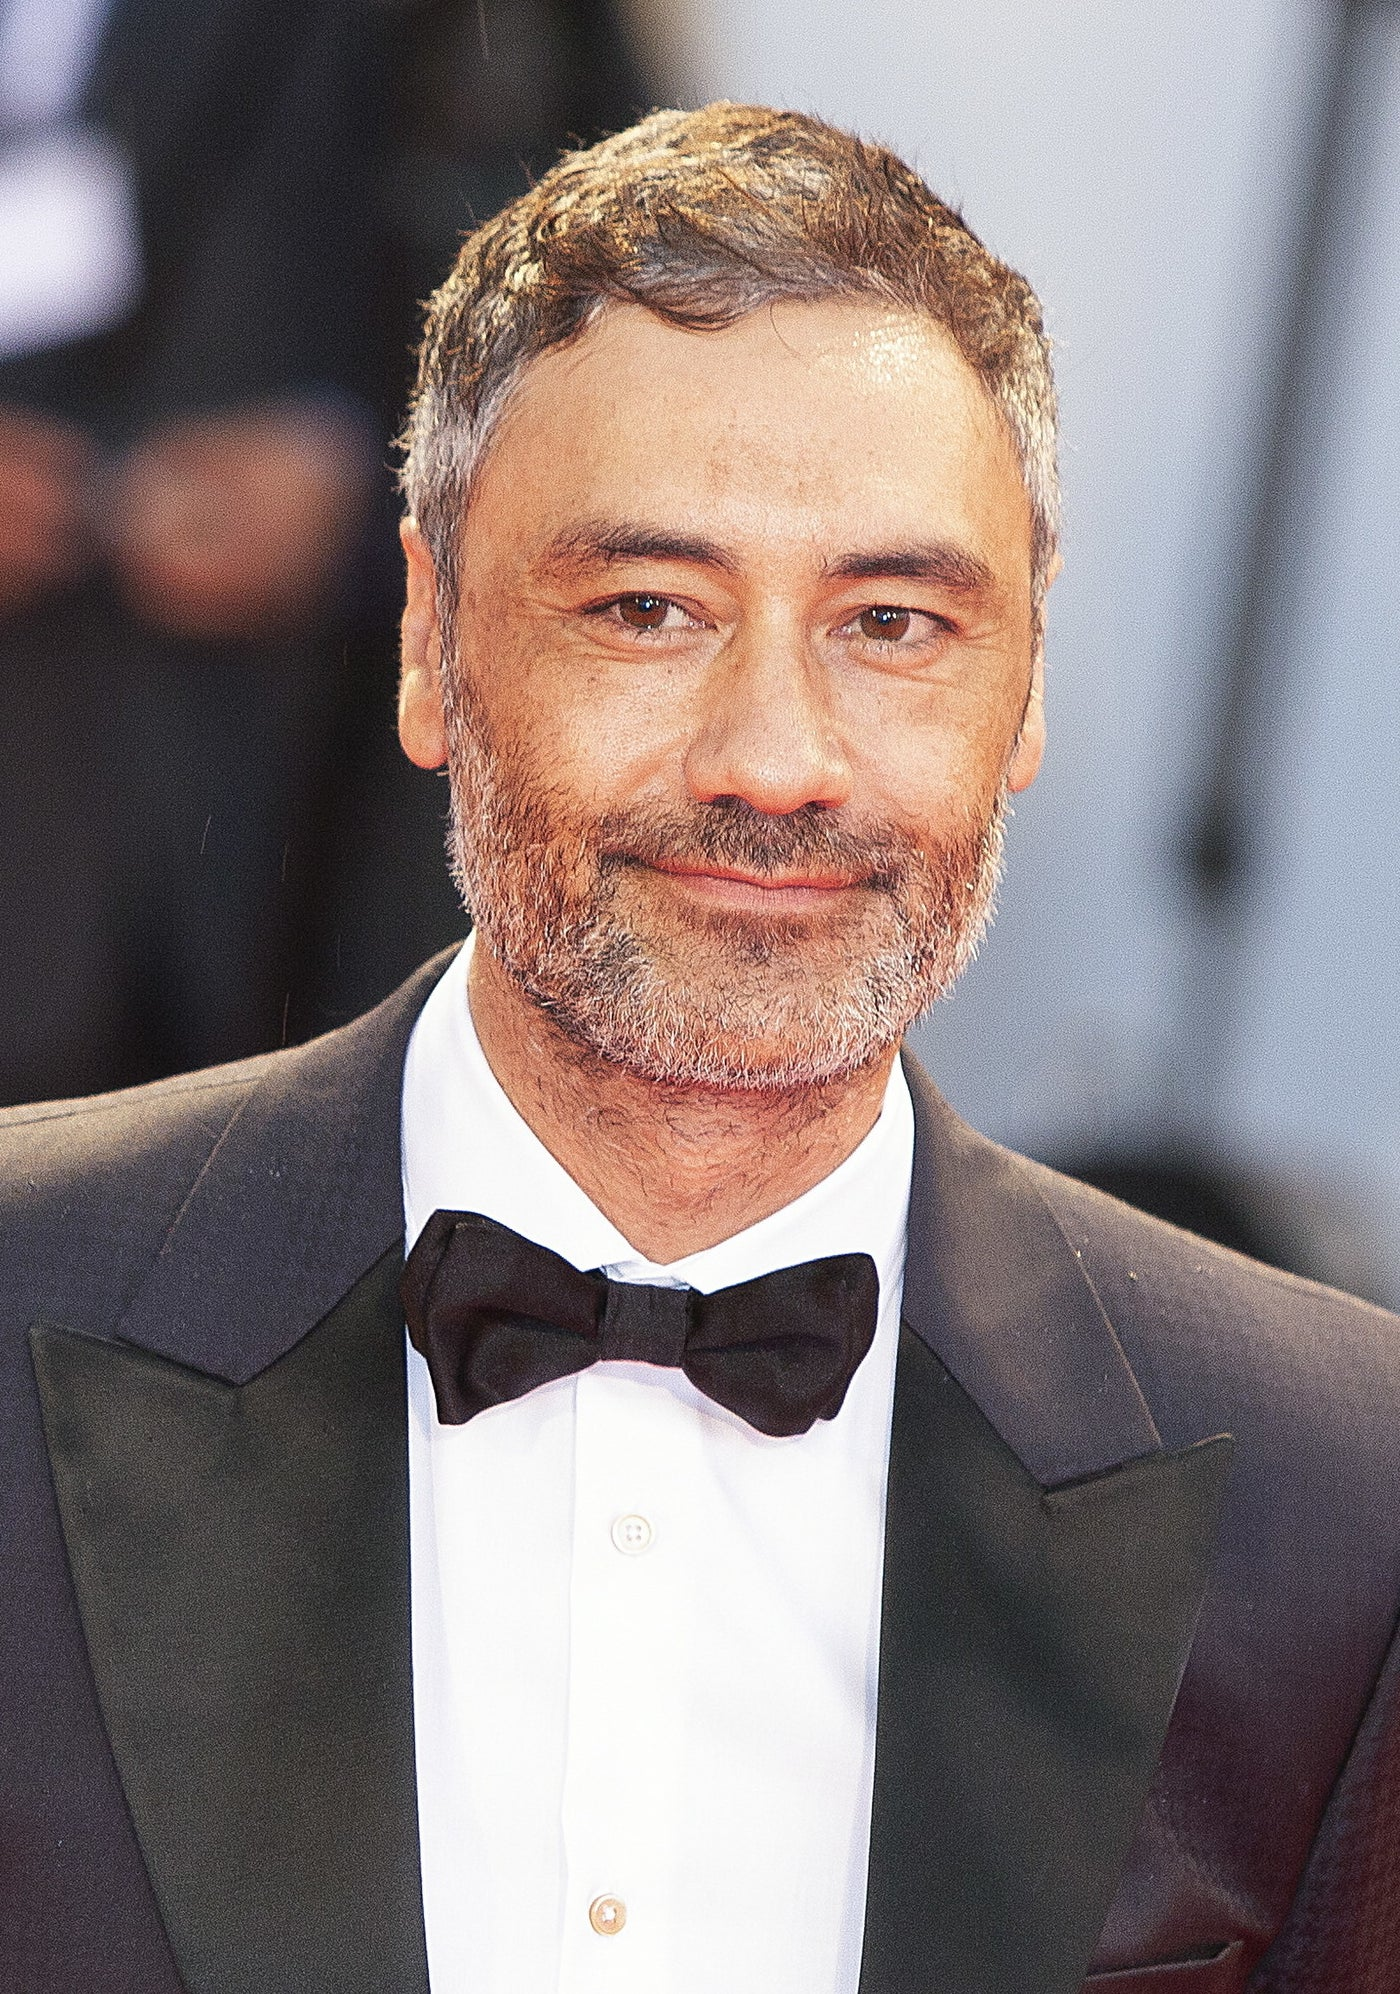 Taika Waititi in a suit with a bow-tie